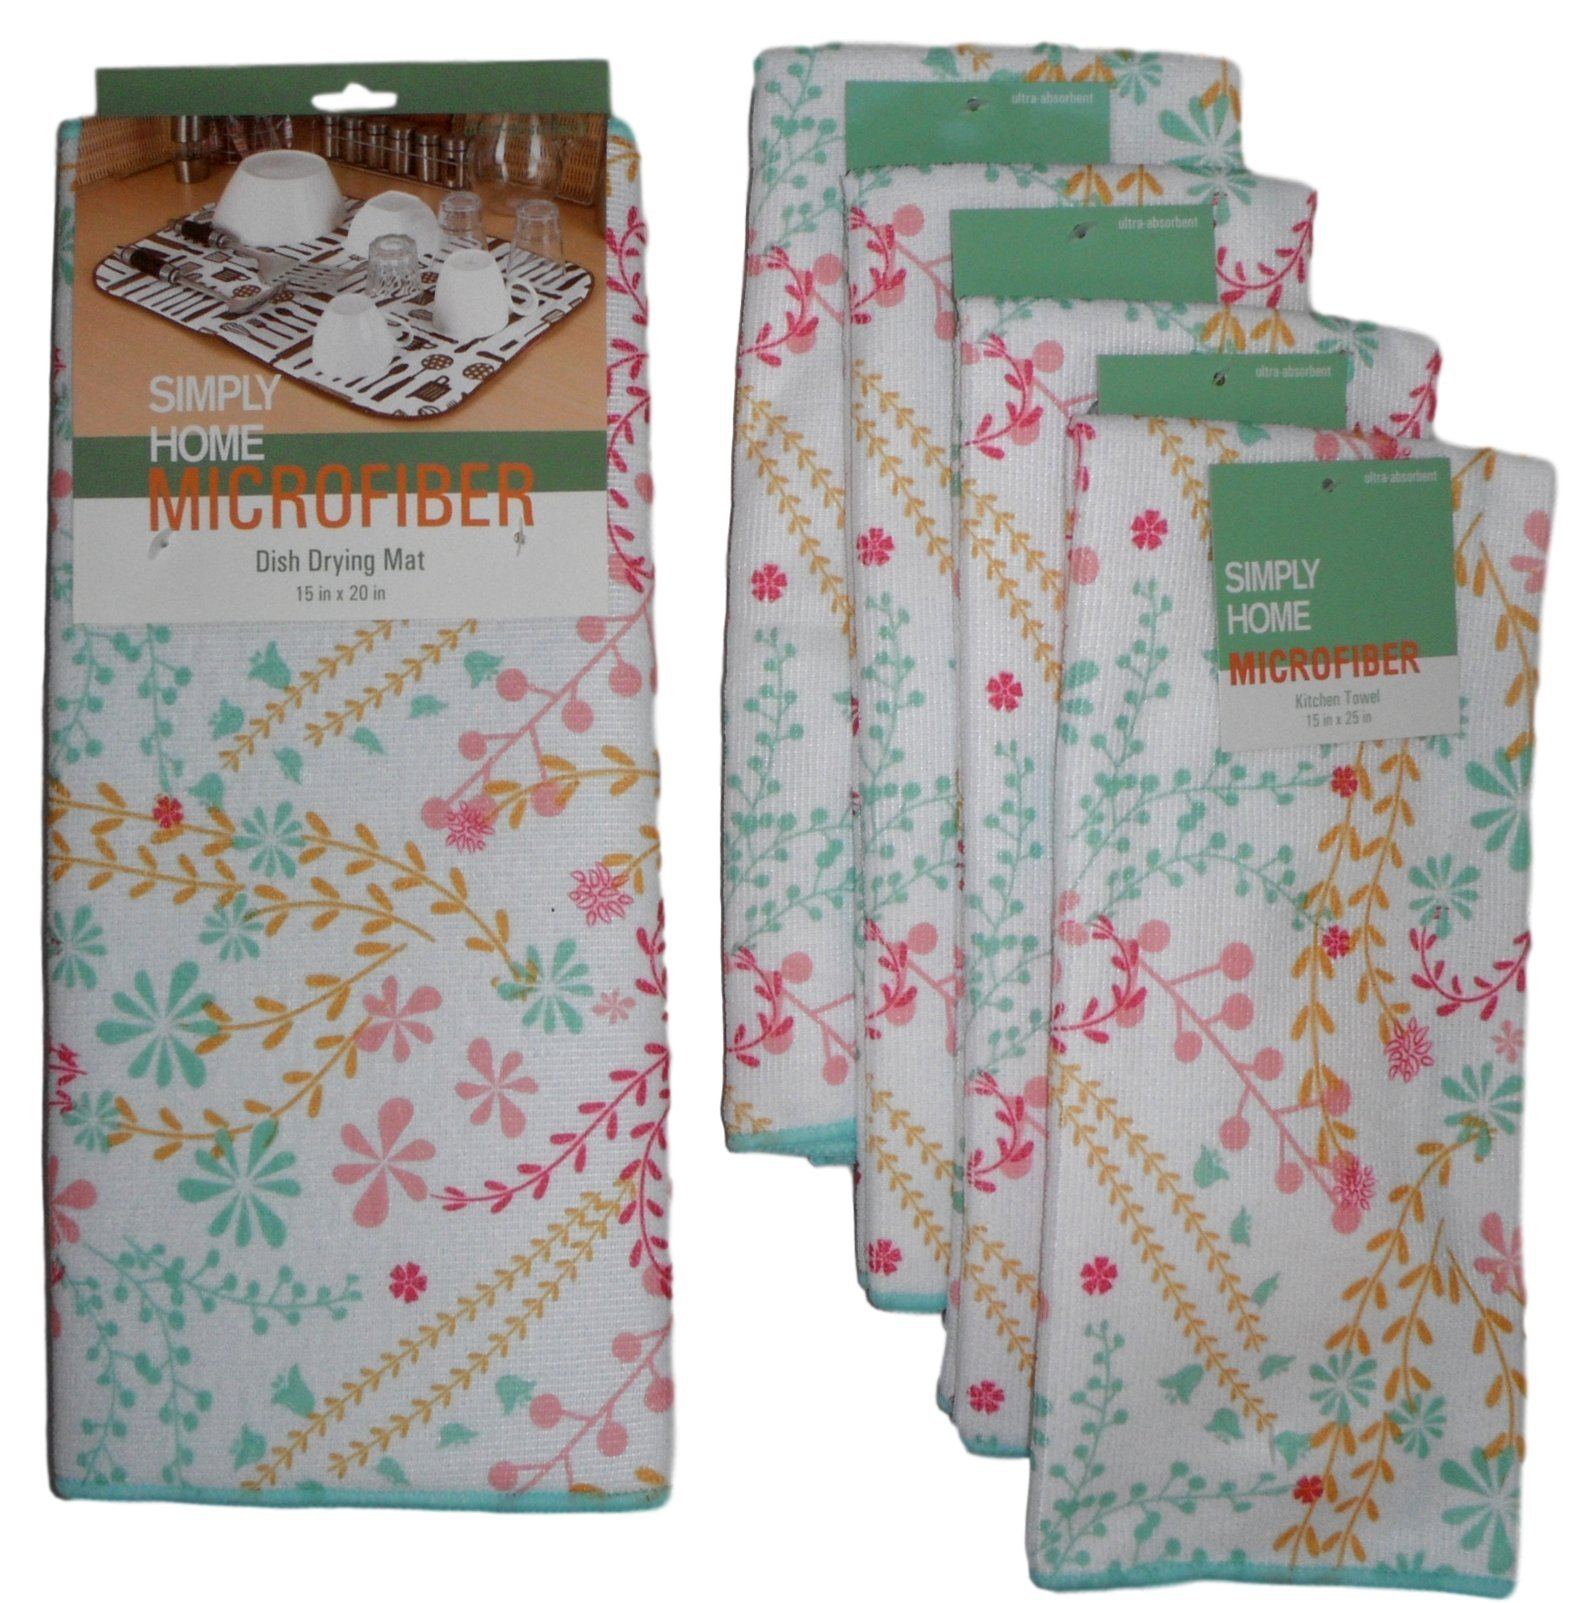 Simply Home Microfiber Dish Drying Mat and Dish Towels - Set of 5 Items (White - Pink, Yellow, and Mint Green Floral)